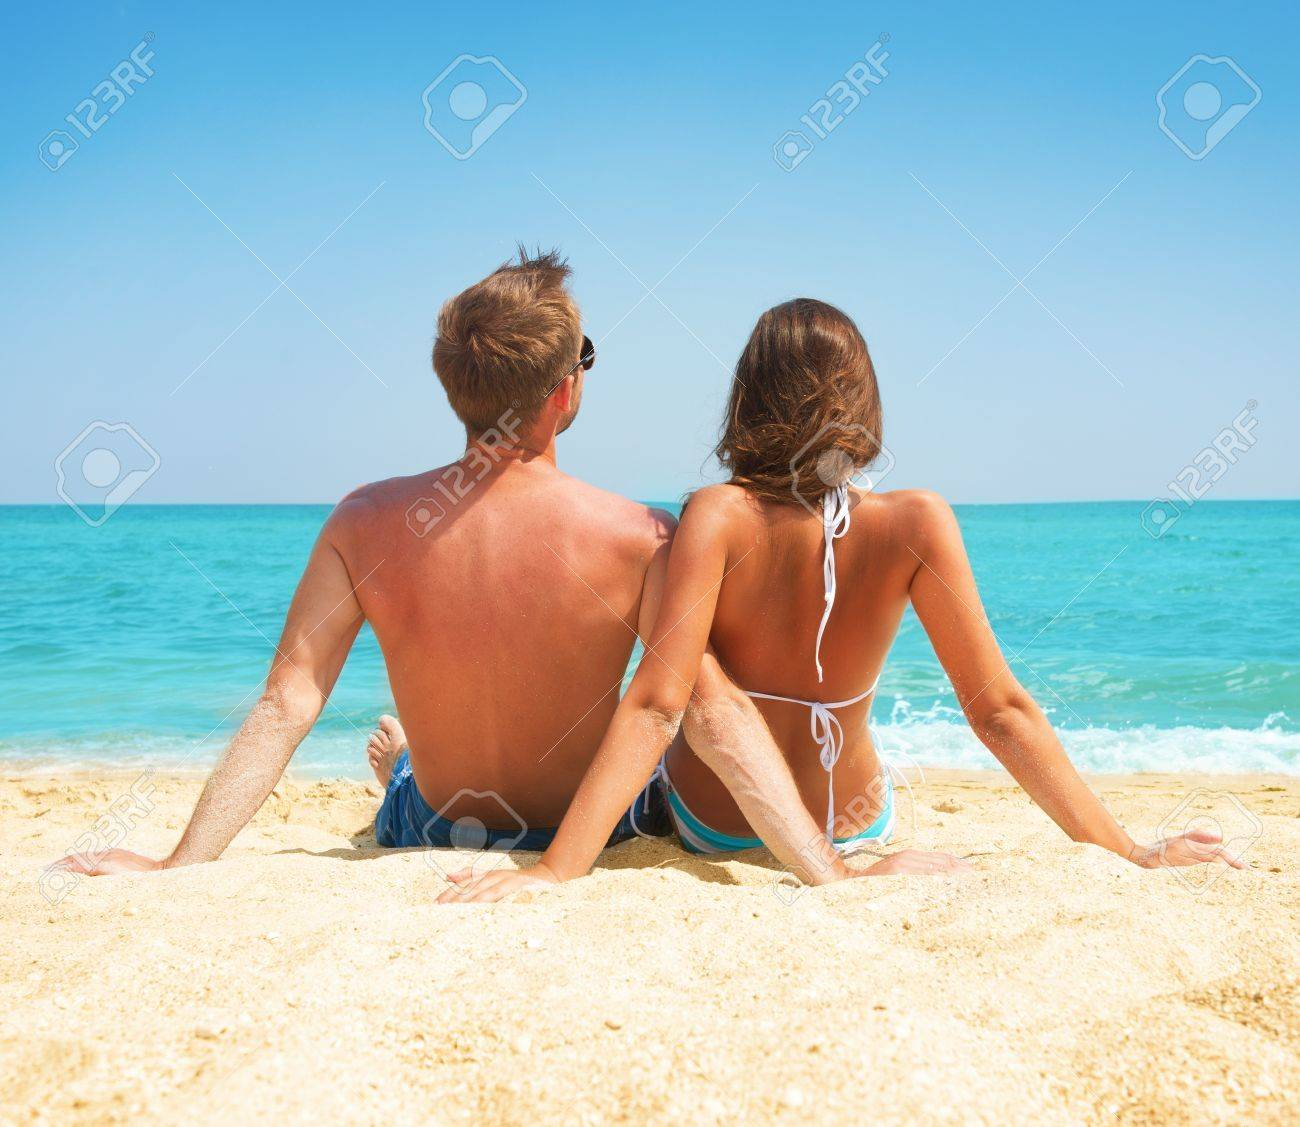 Young Couple Sitting together on the Beach  Vacation concept Stock Photo - 21289470